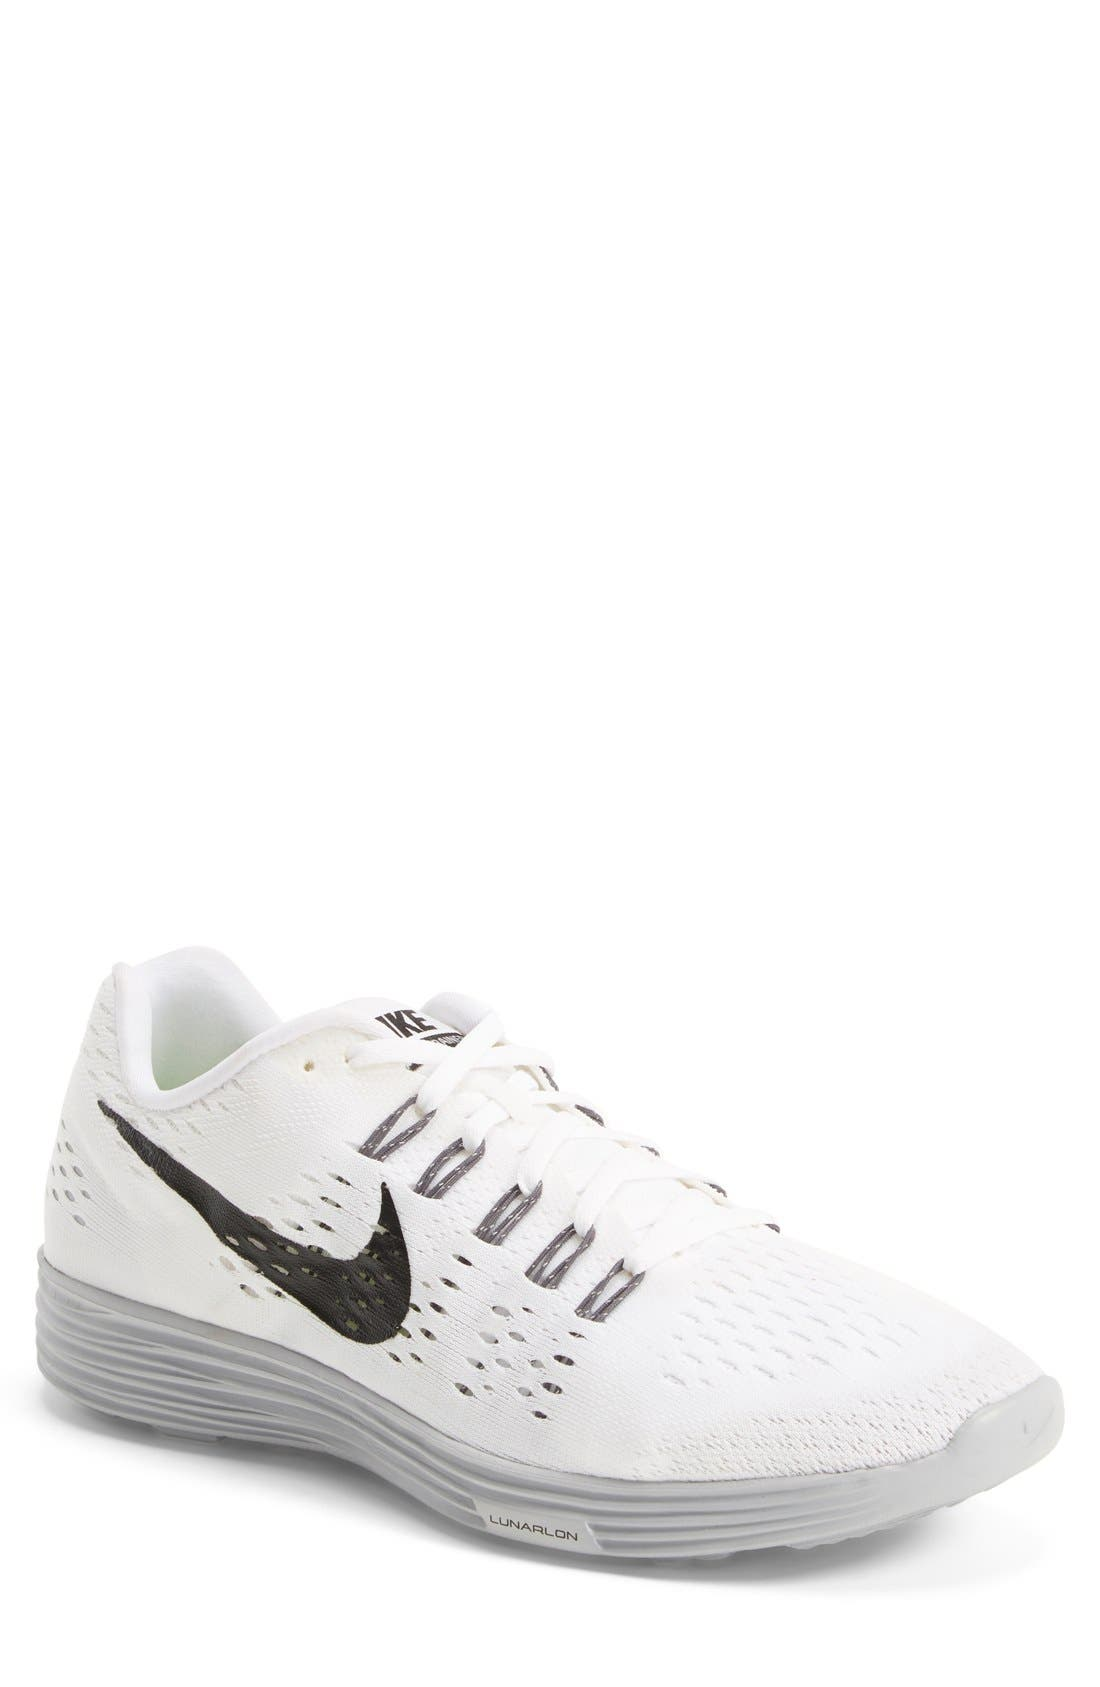 Alternate Image 1 Selected - Nike 'LunarTempo' Running Shoe (Men)